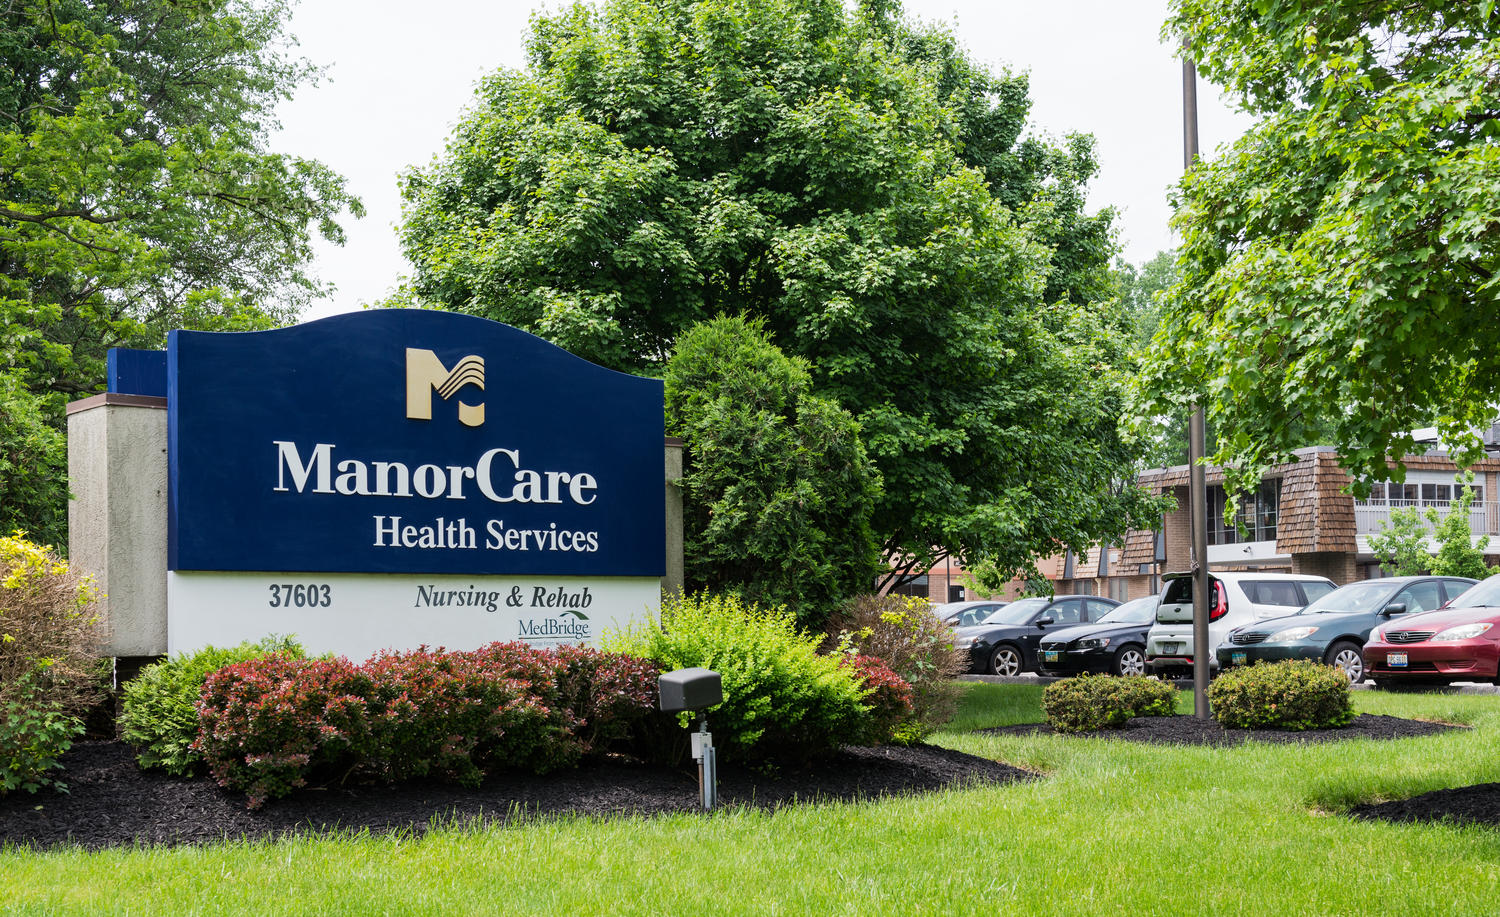 Manorcare Health Large 032 HCR Manorcare Willoughby 1500X917 72Dpi